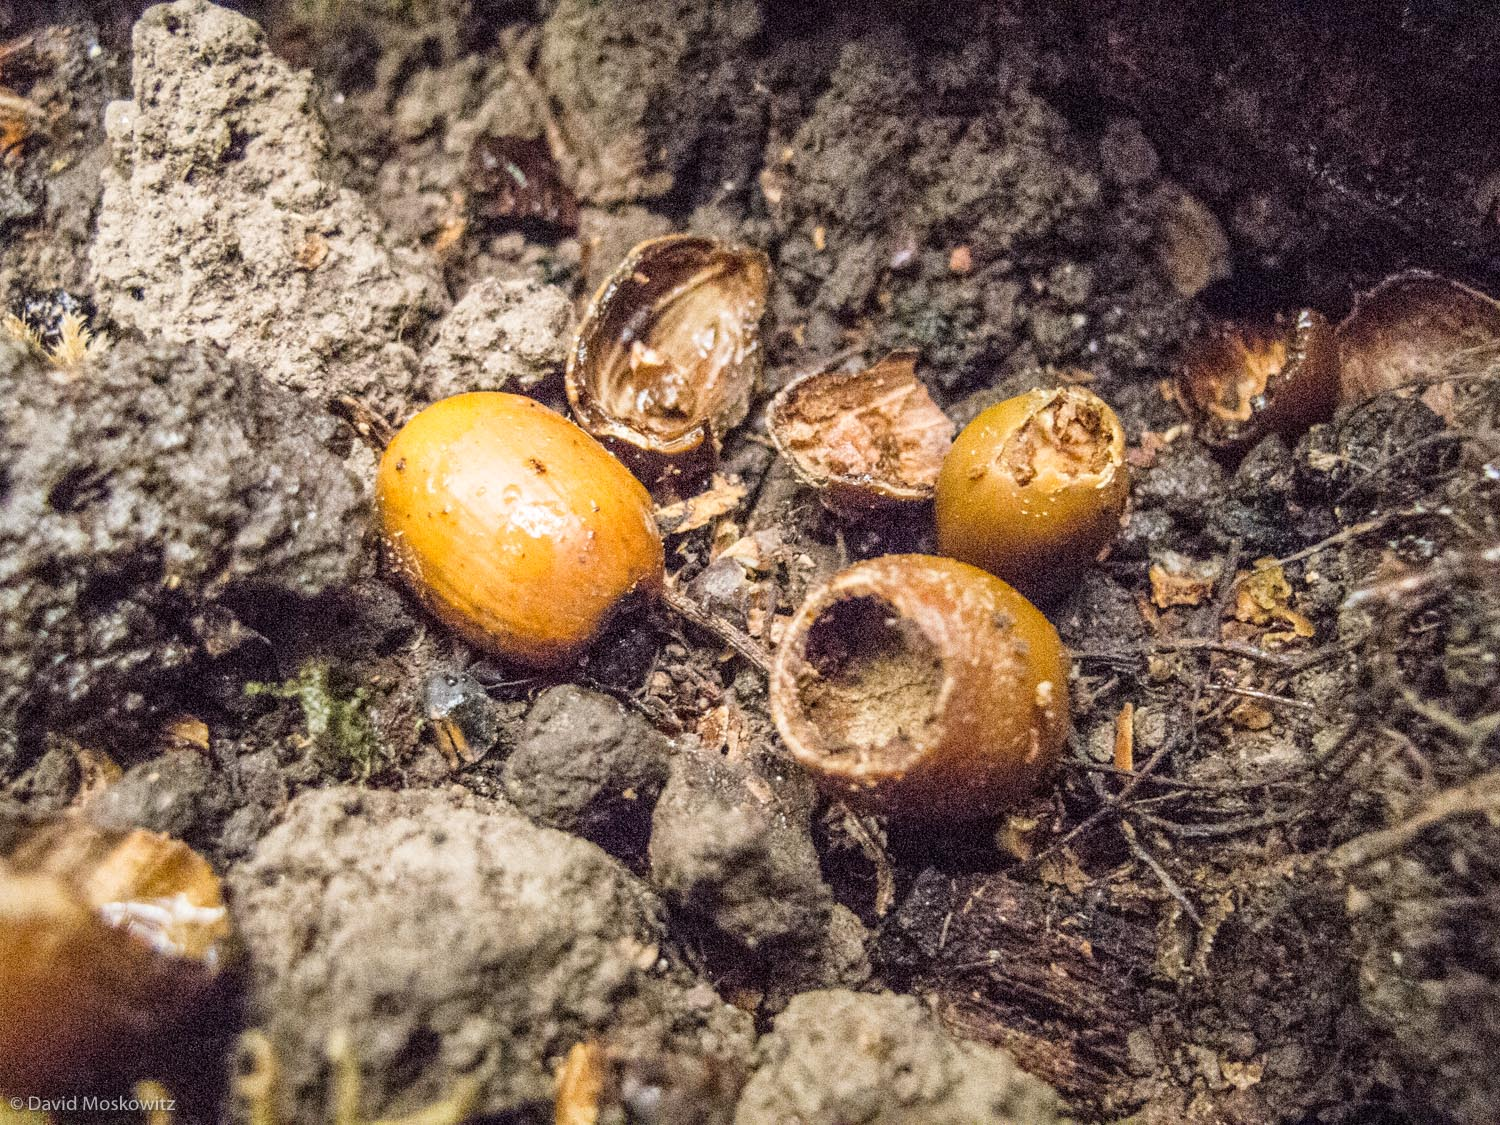 The distinctive circular opening and fine toothmarks of a deer mouse feeding on Oregon white oak (Quercus garryana) acorns. Found in a space under a fallen log along the Columbia River, downstream from Portland Oregon.